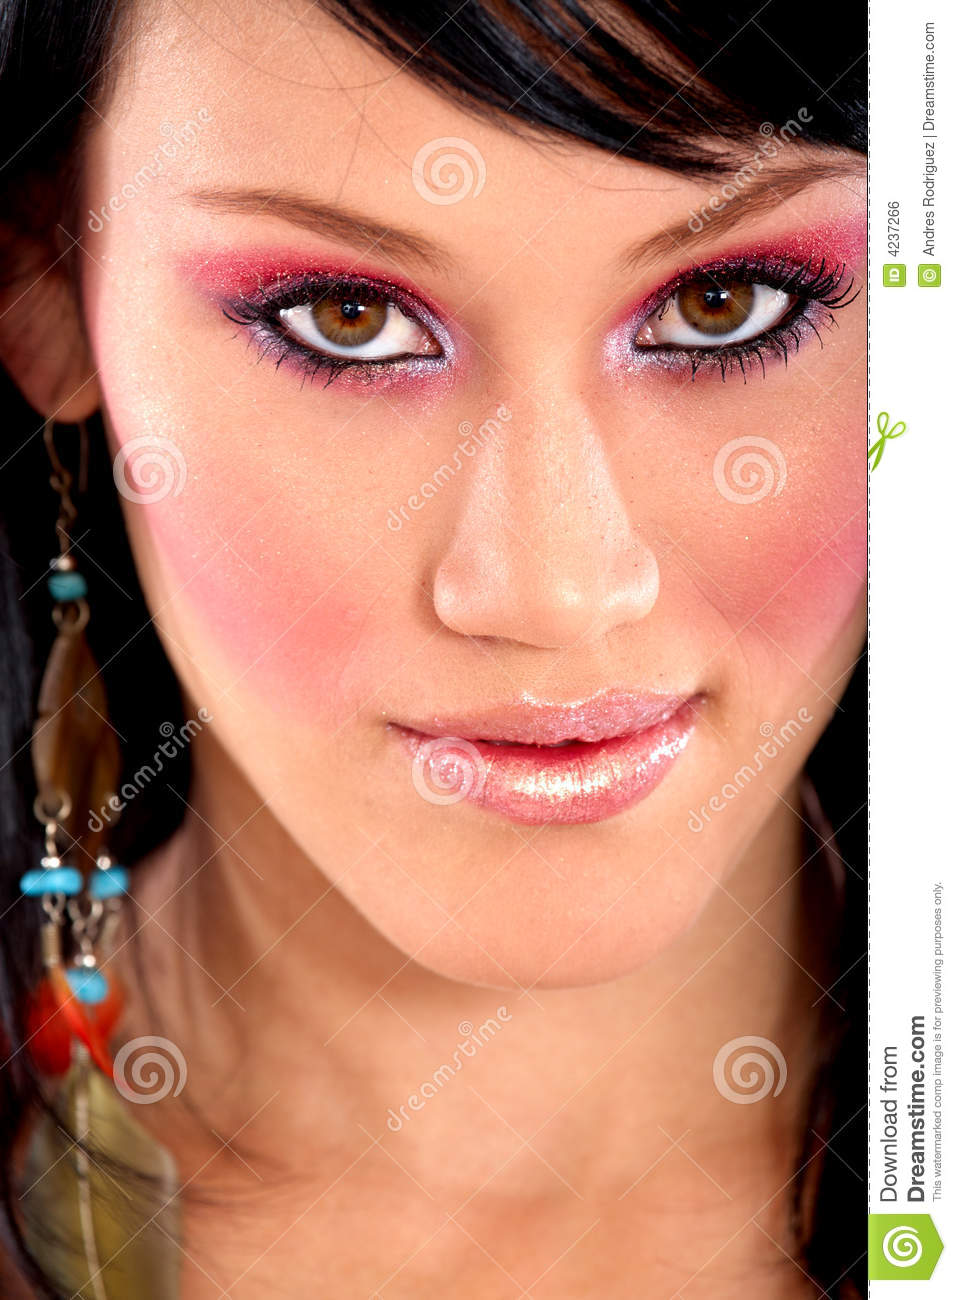 Fashion Face With Make Up Royalty Free Stock Image - Image ...